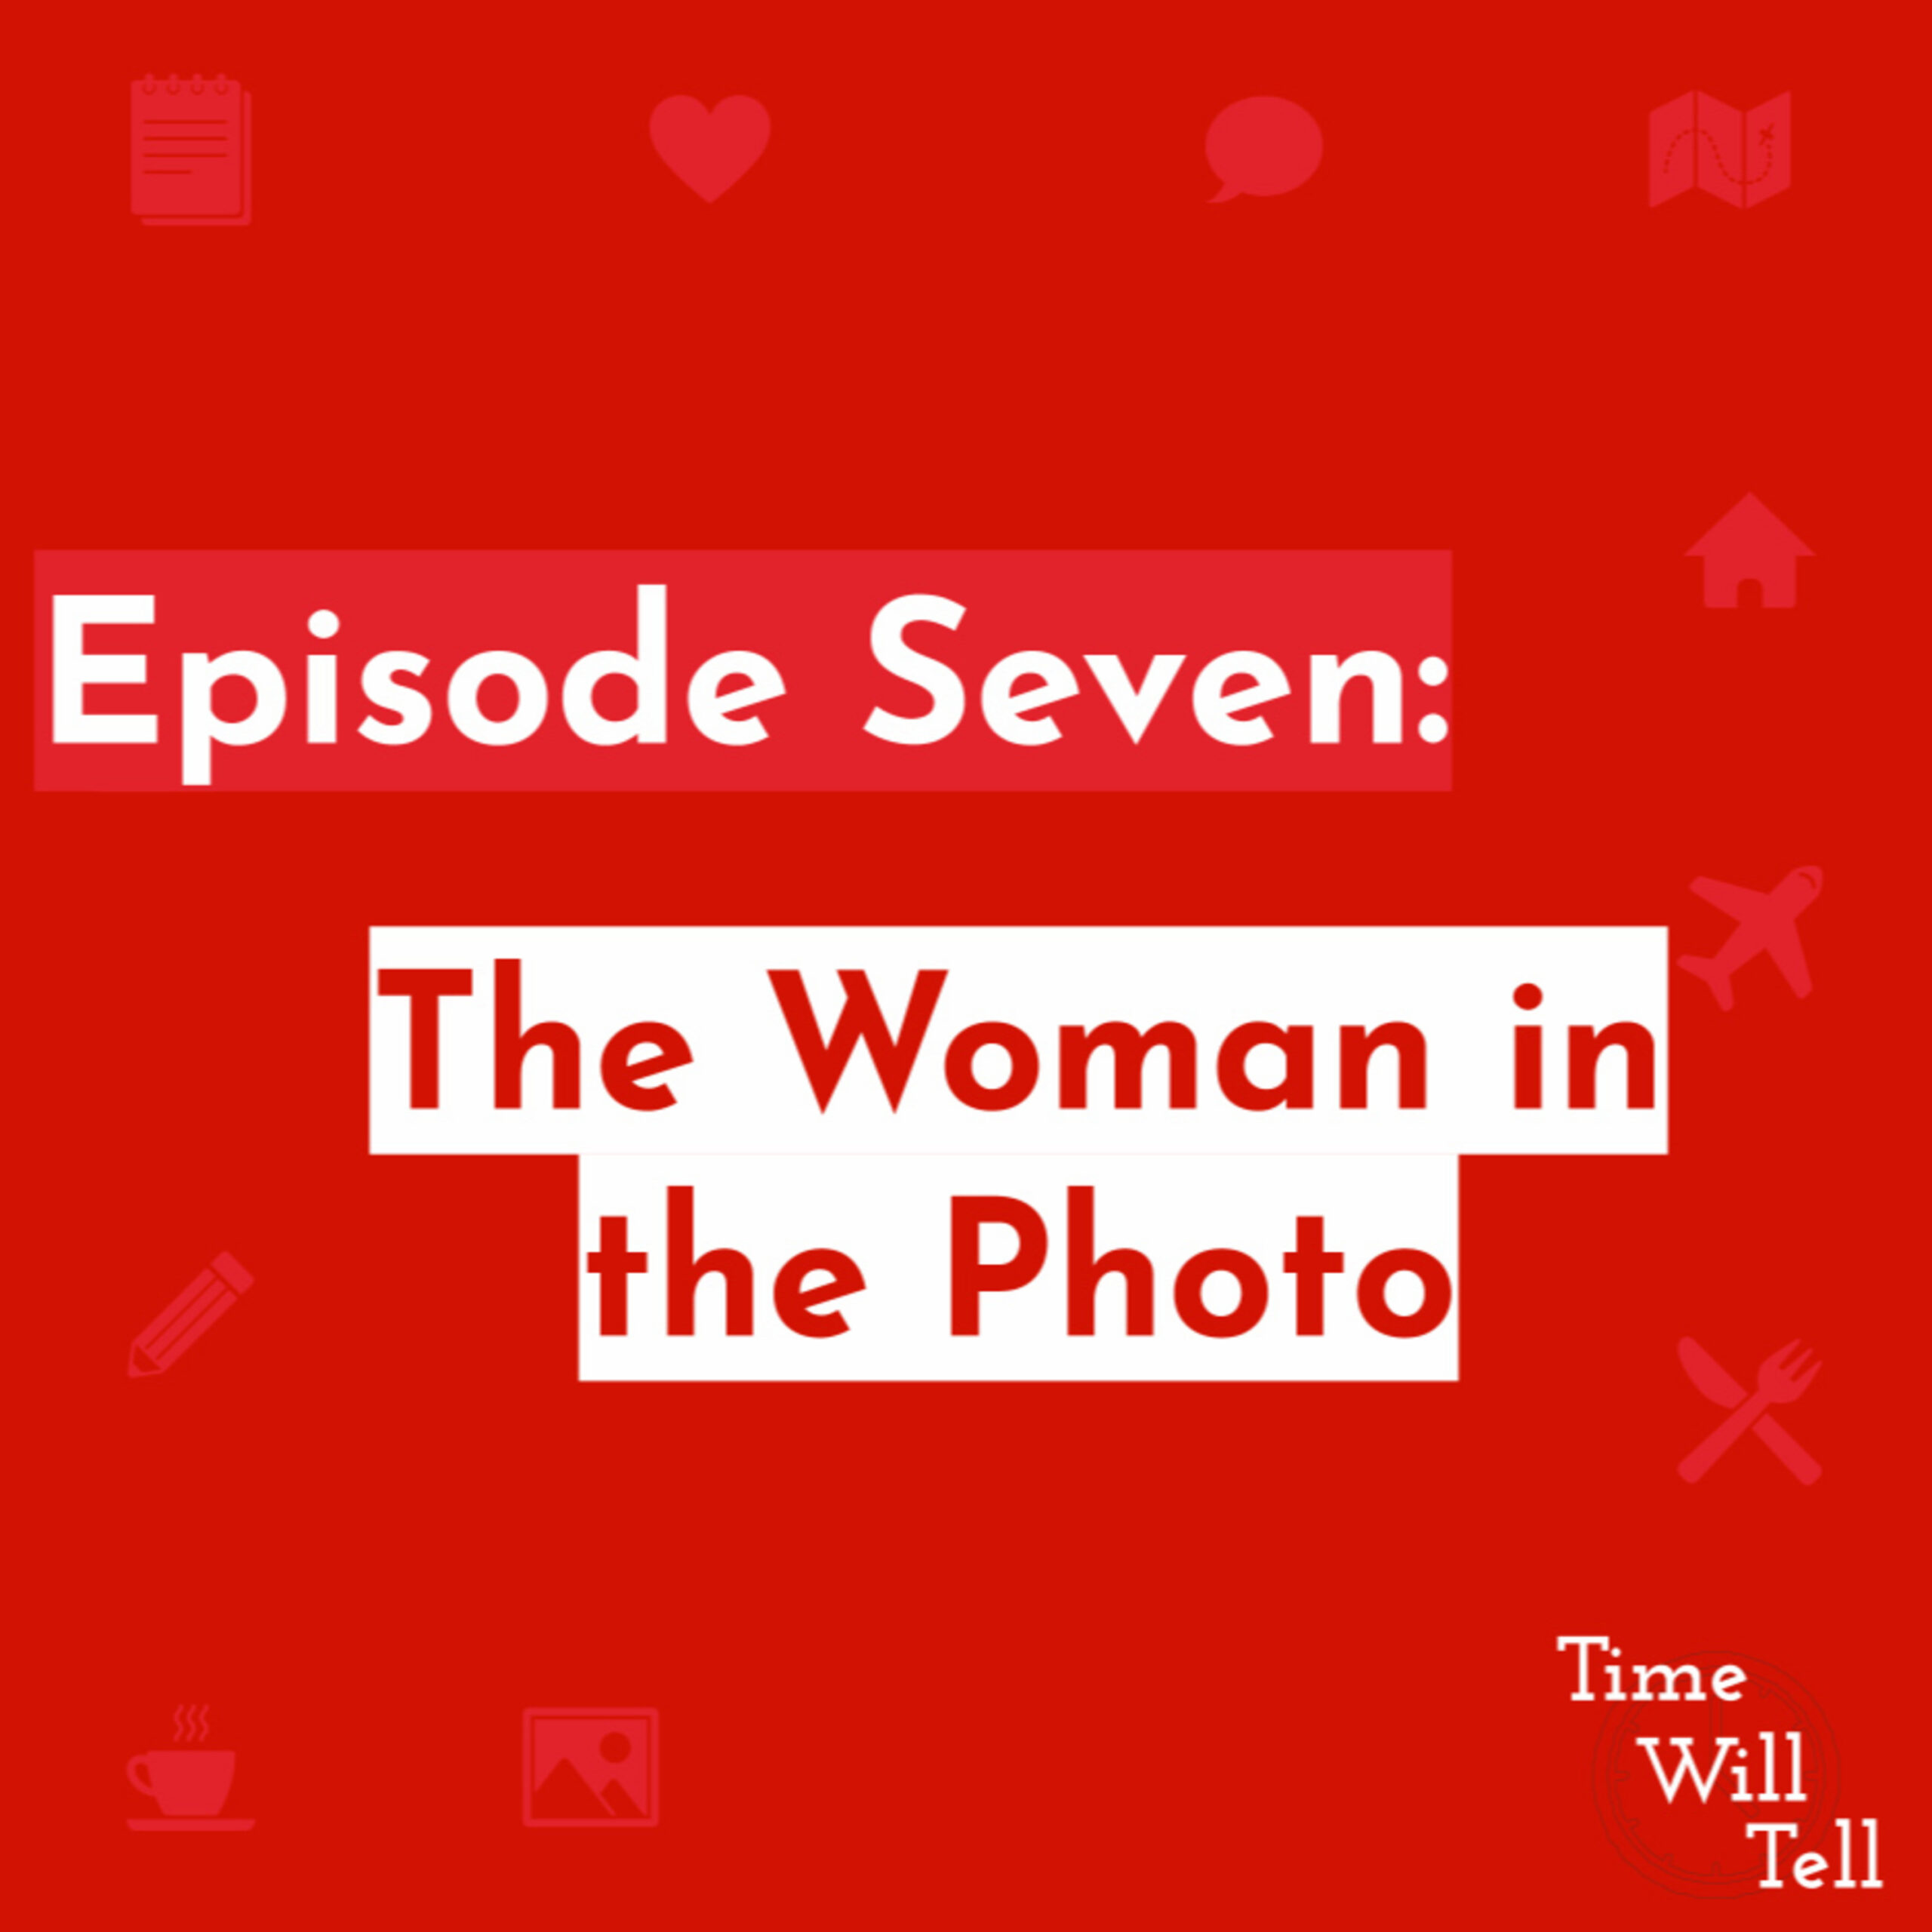 Episode Seven: The Woman in the Photo